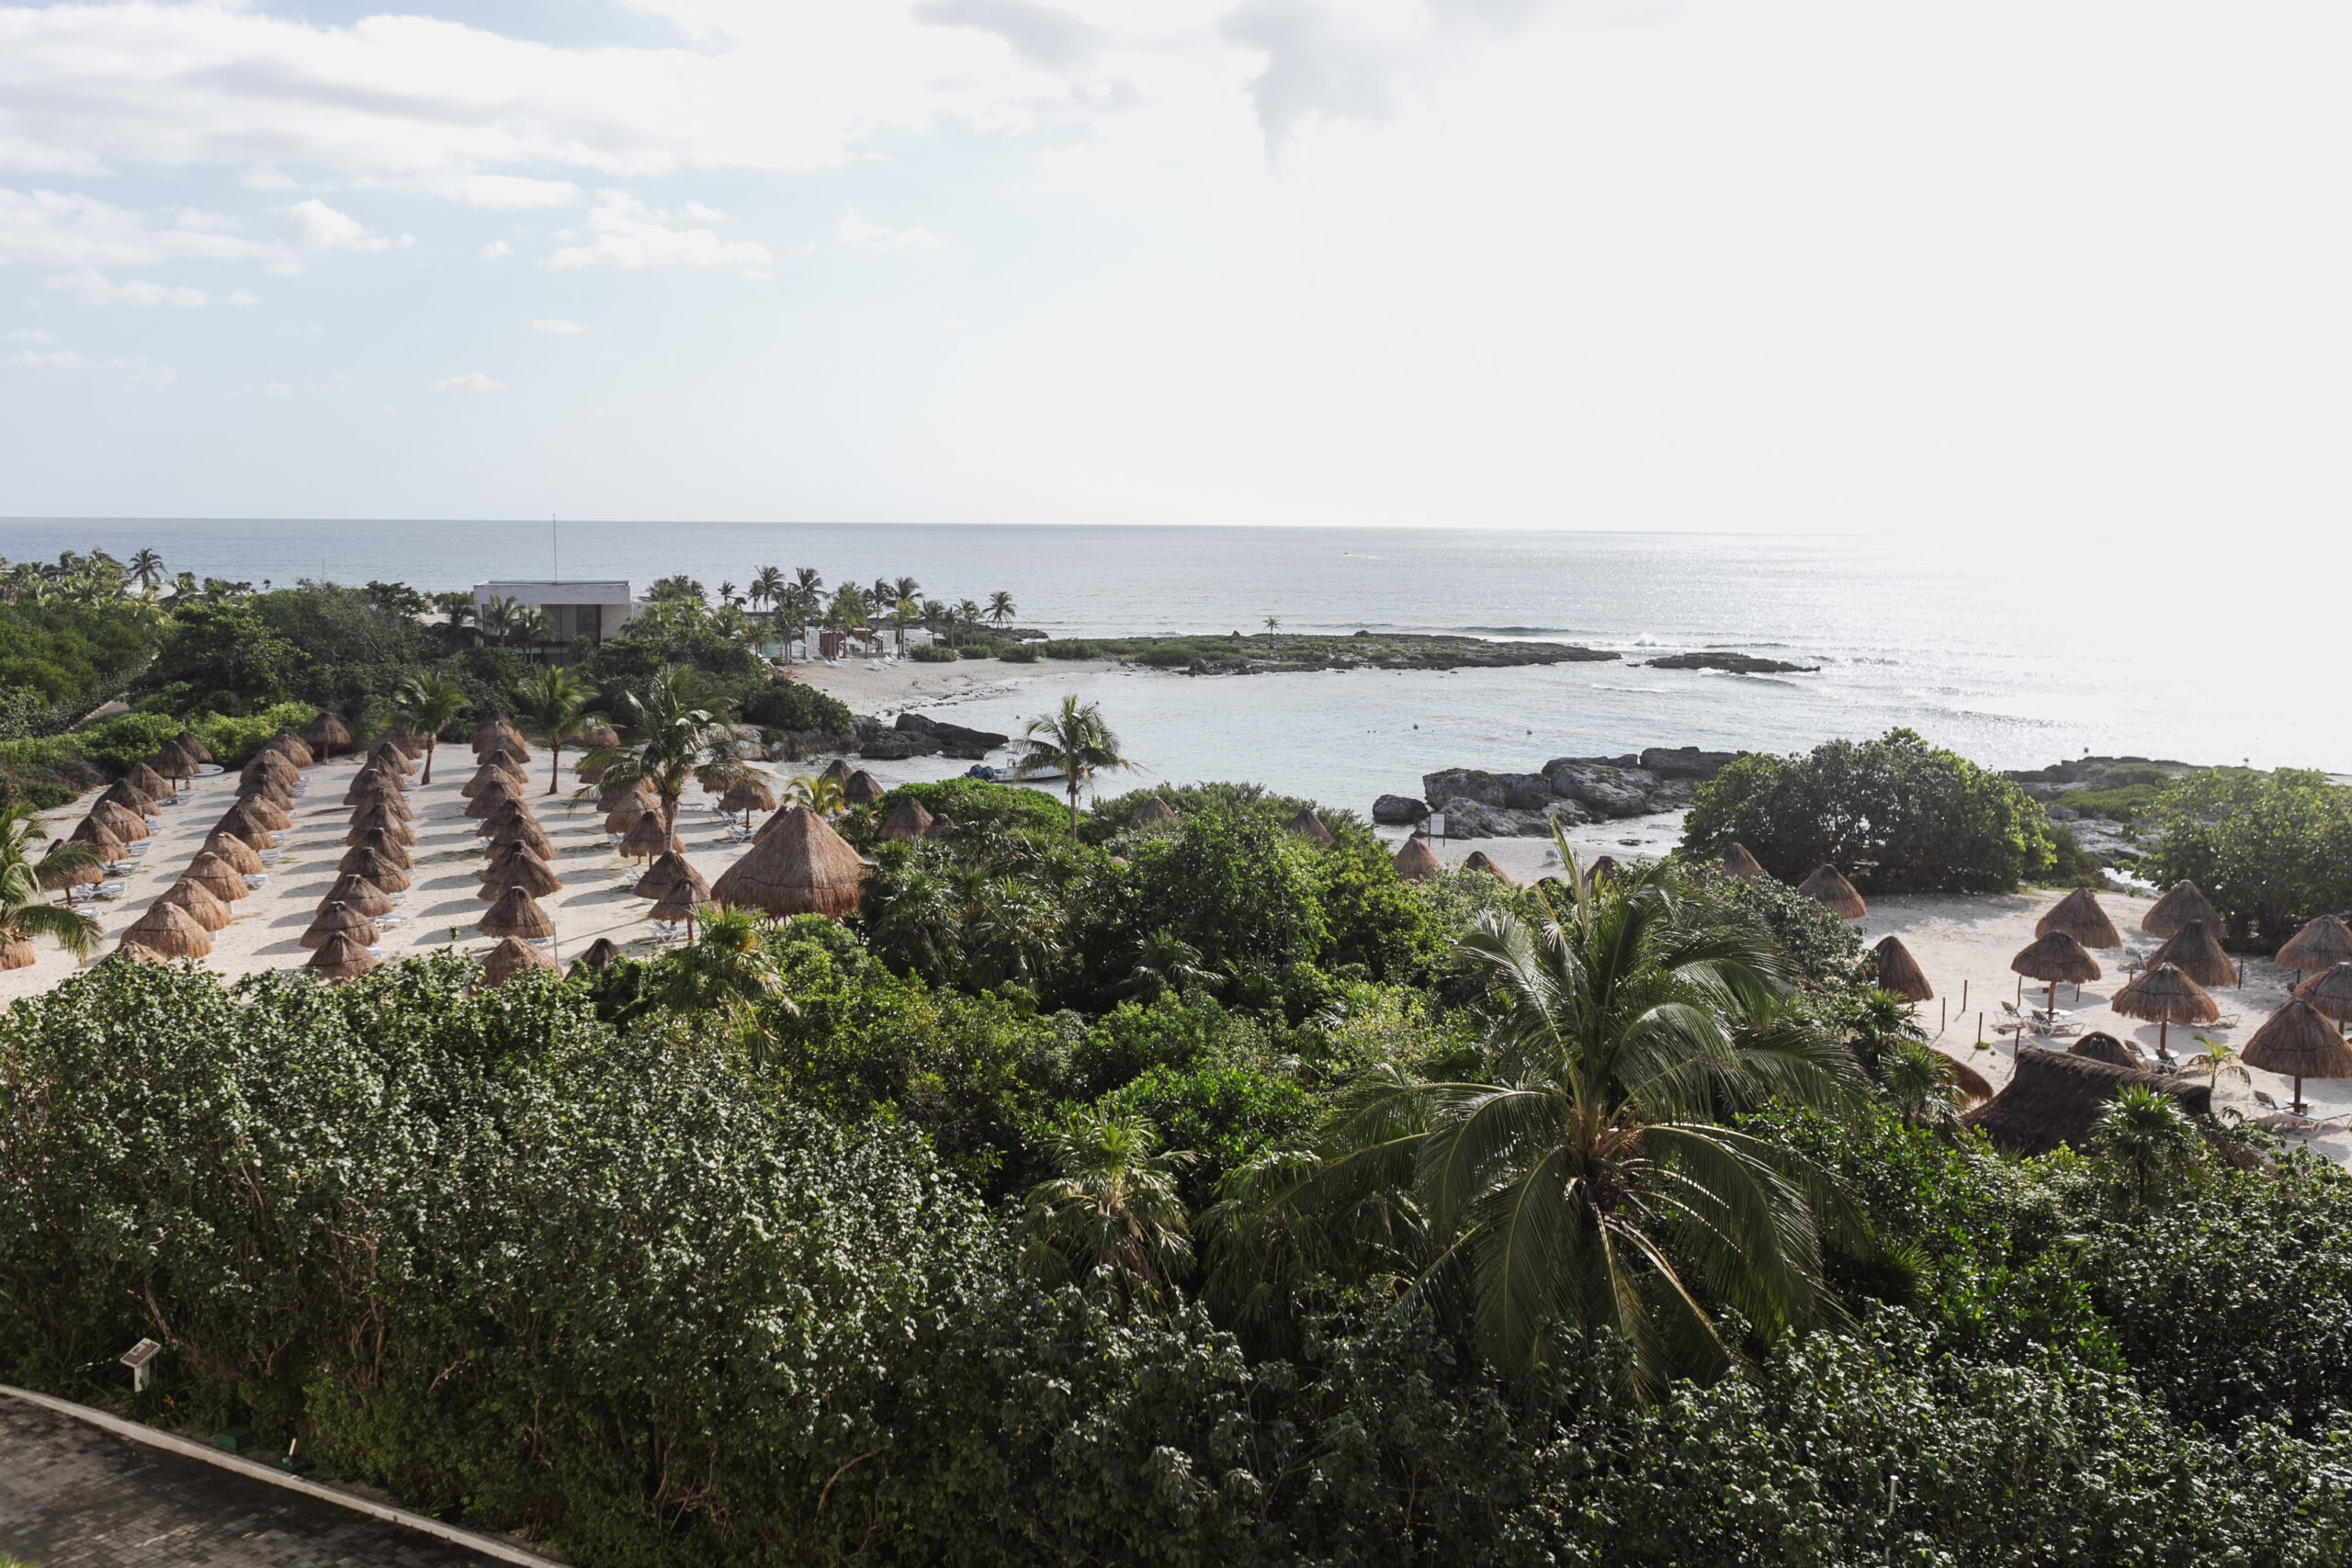 our trip to the riviera maya, mexico